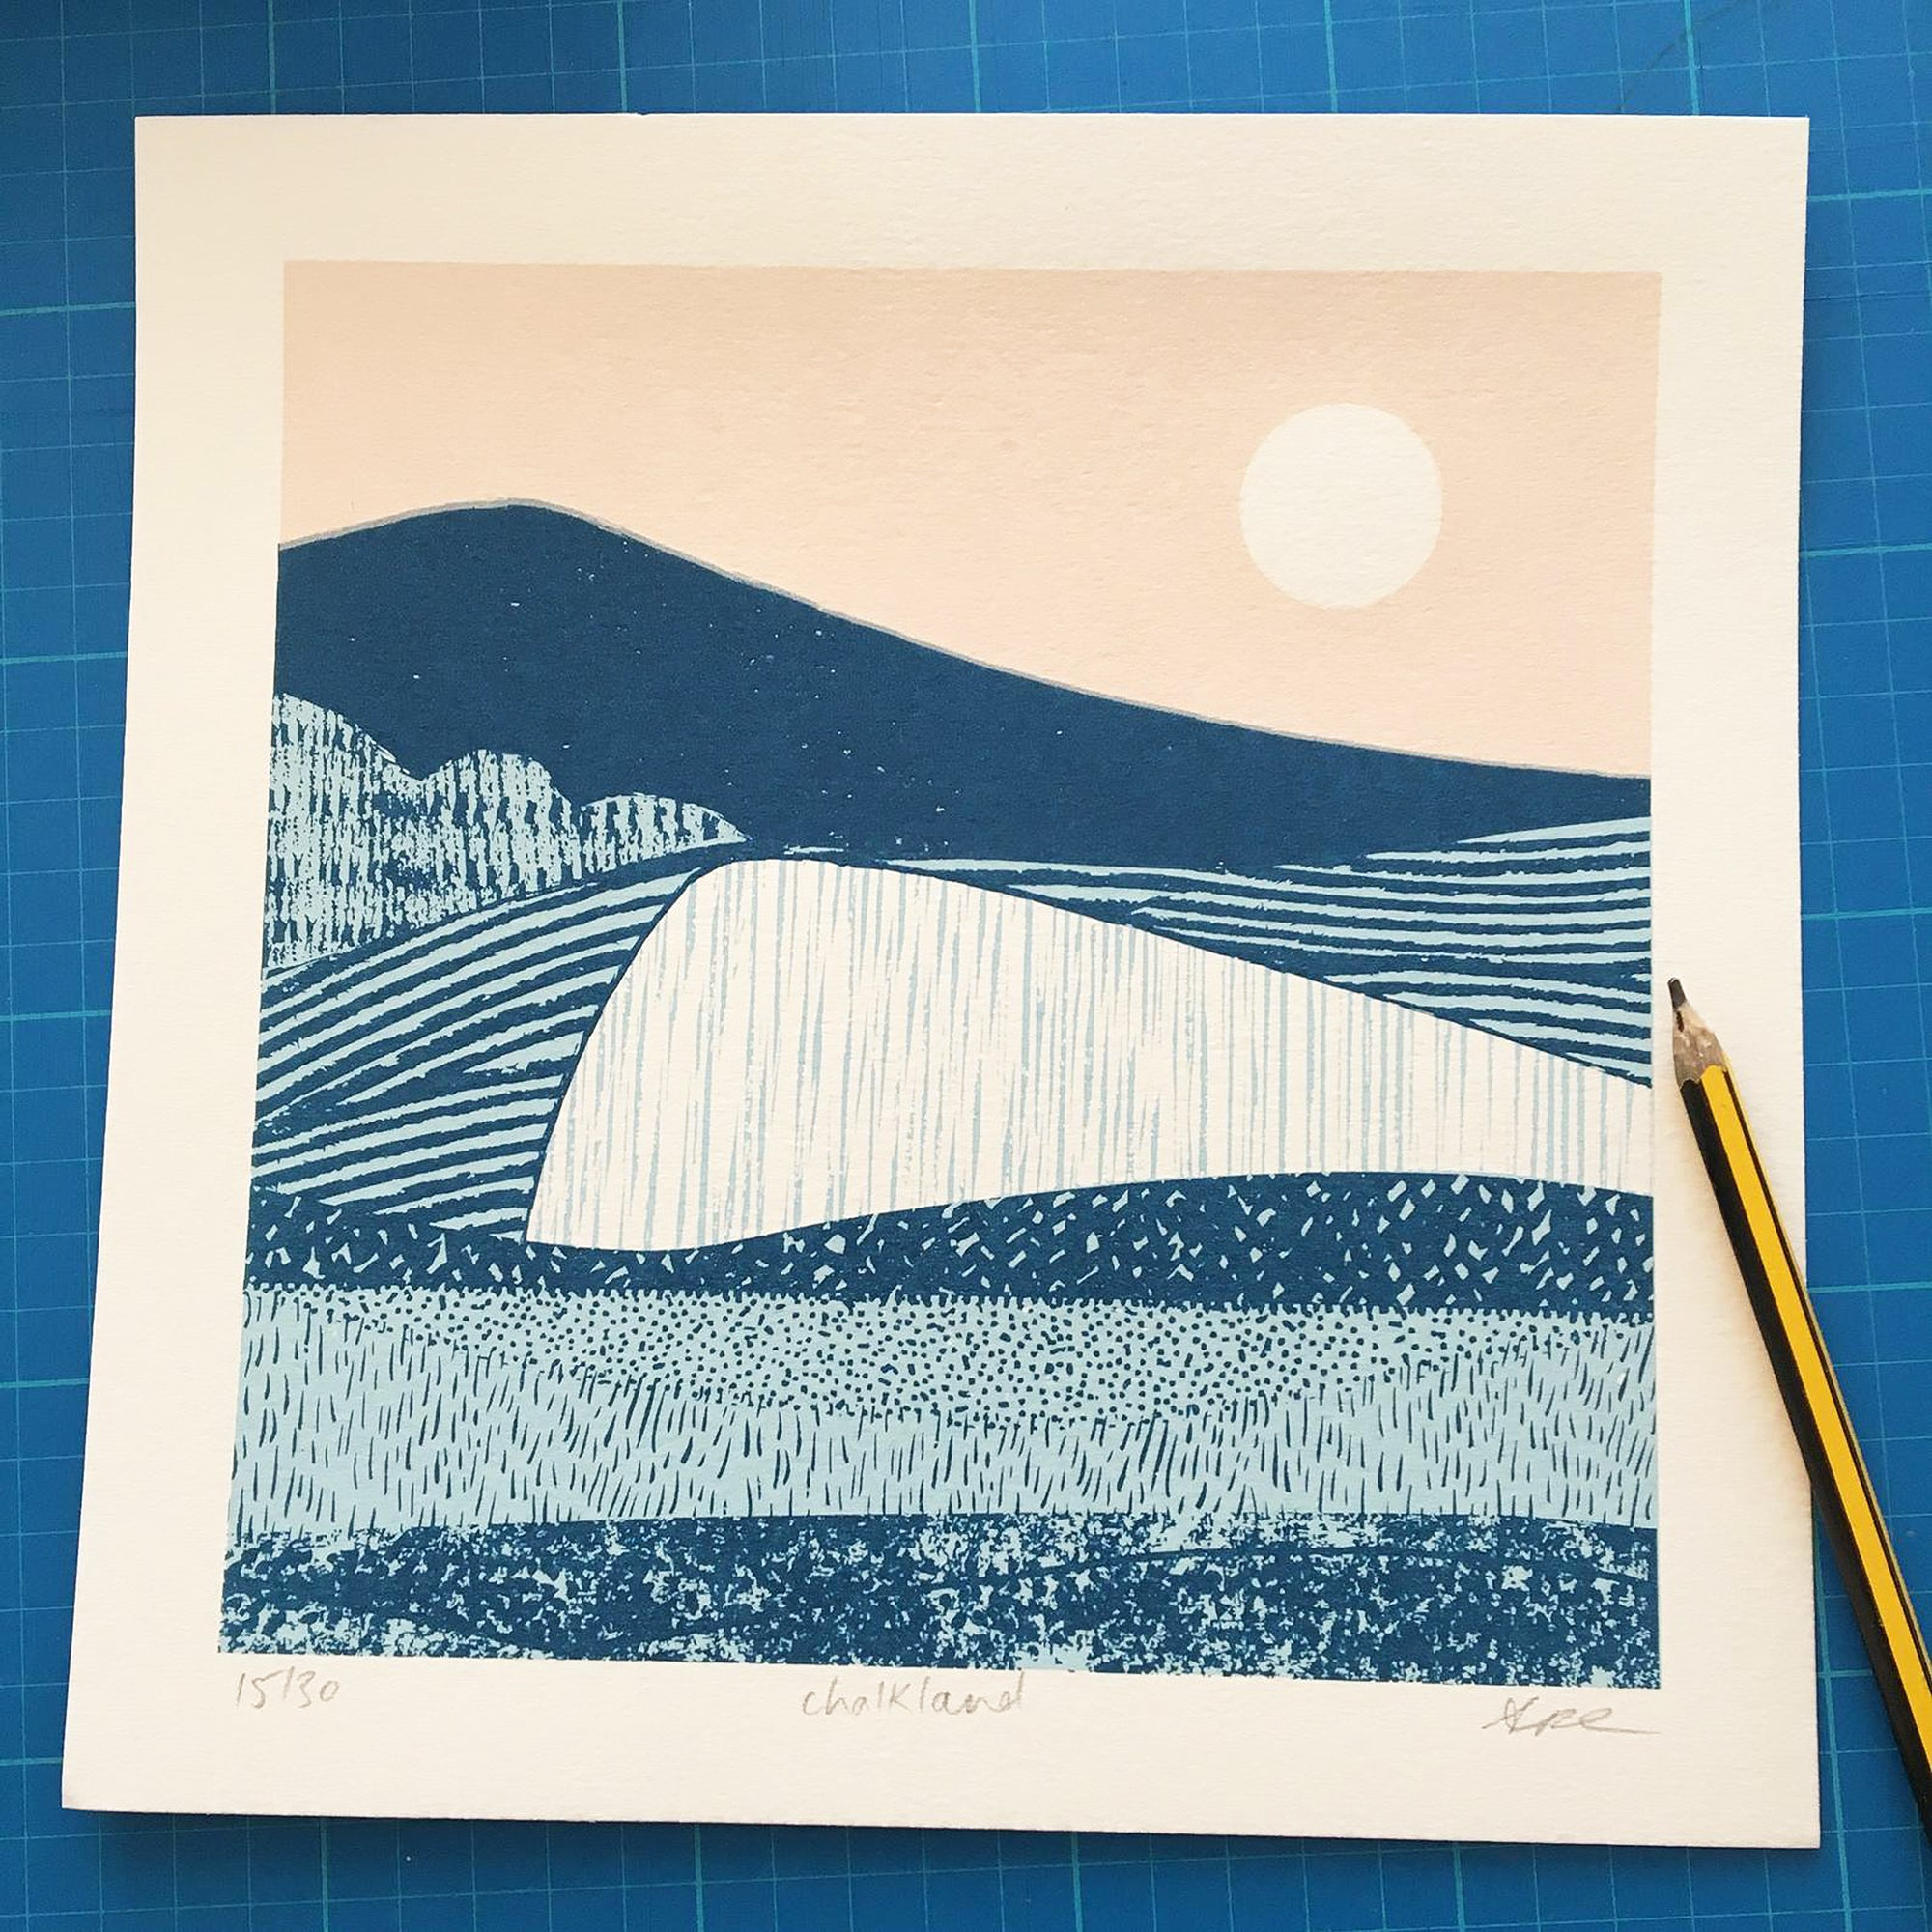 Chalkland screen print